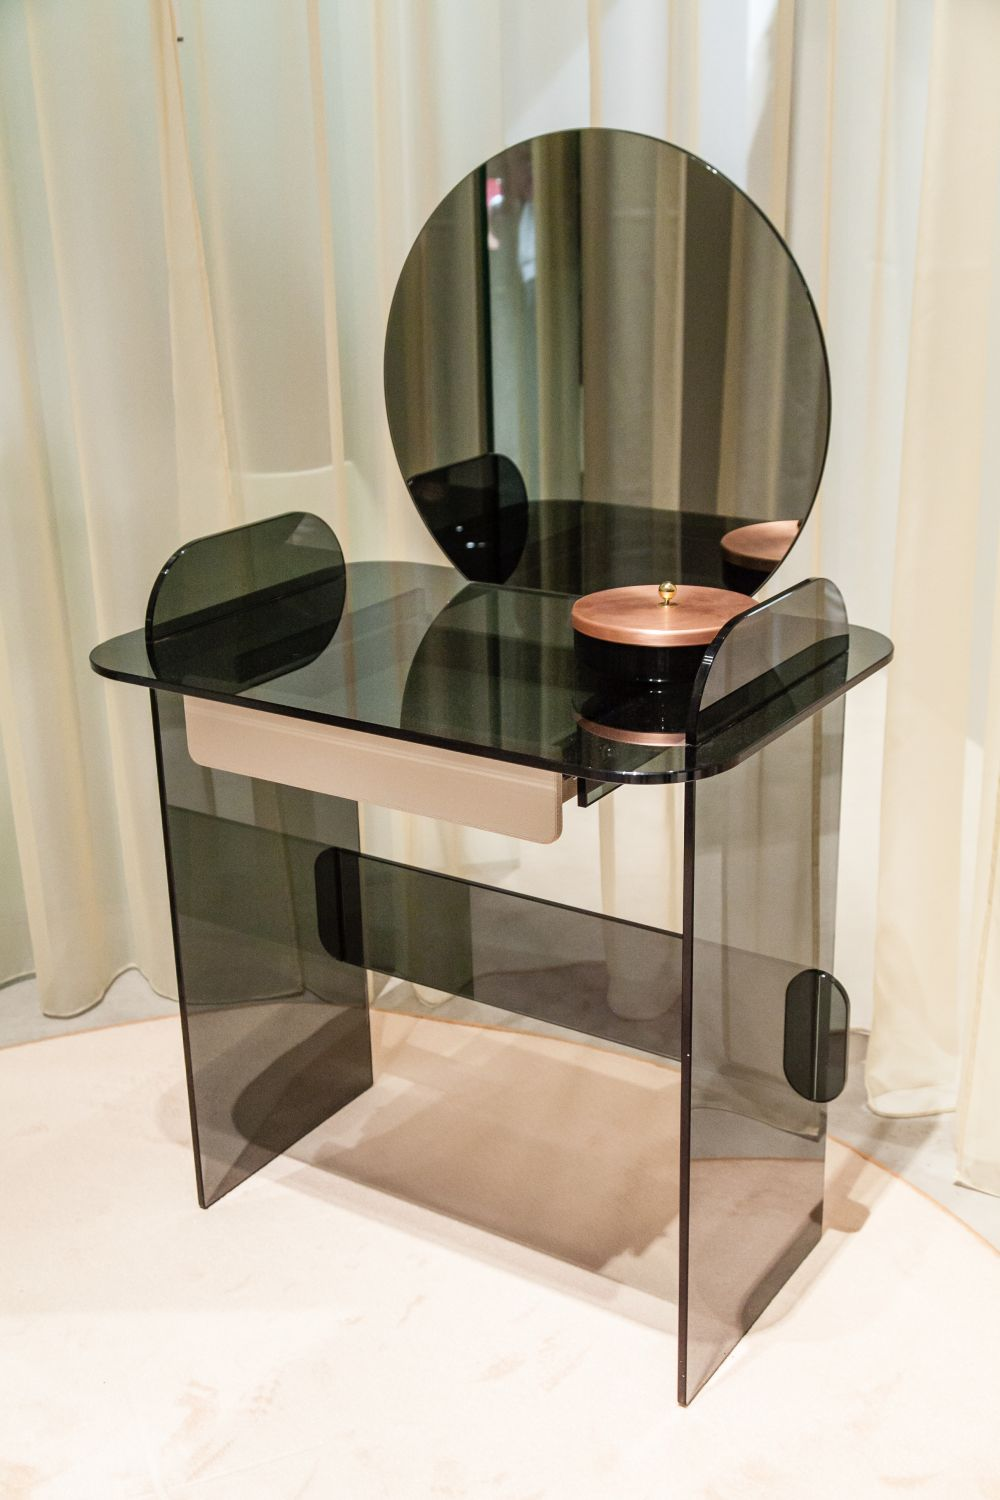 Makeup tables modern makeup tables with simple yet exquisite designs KDJZVPM